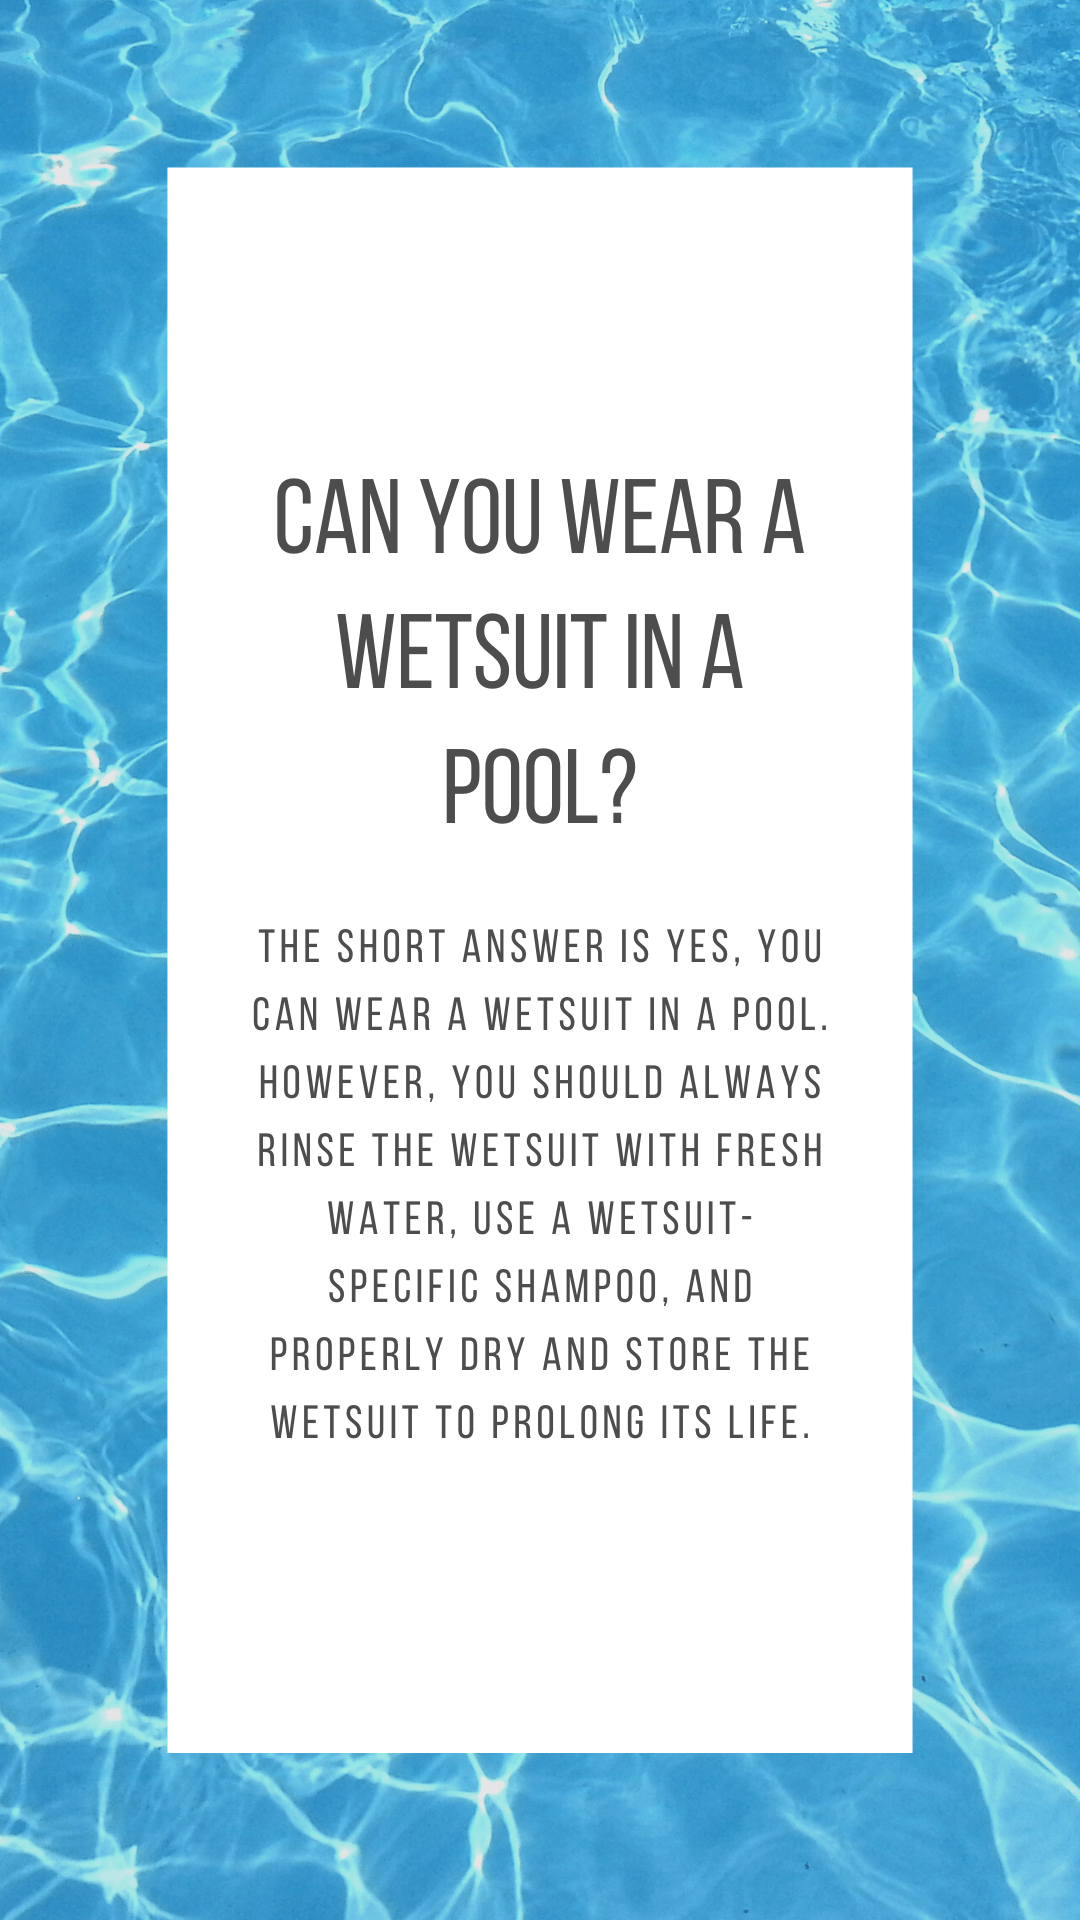 can you wear a wetsuit in a pool